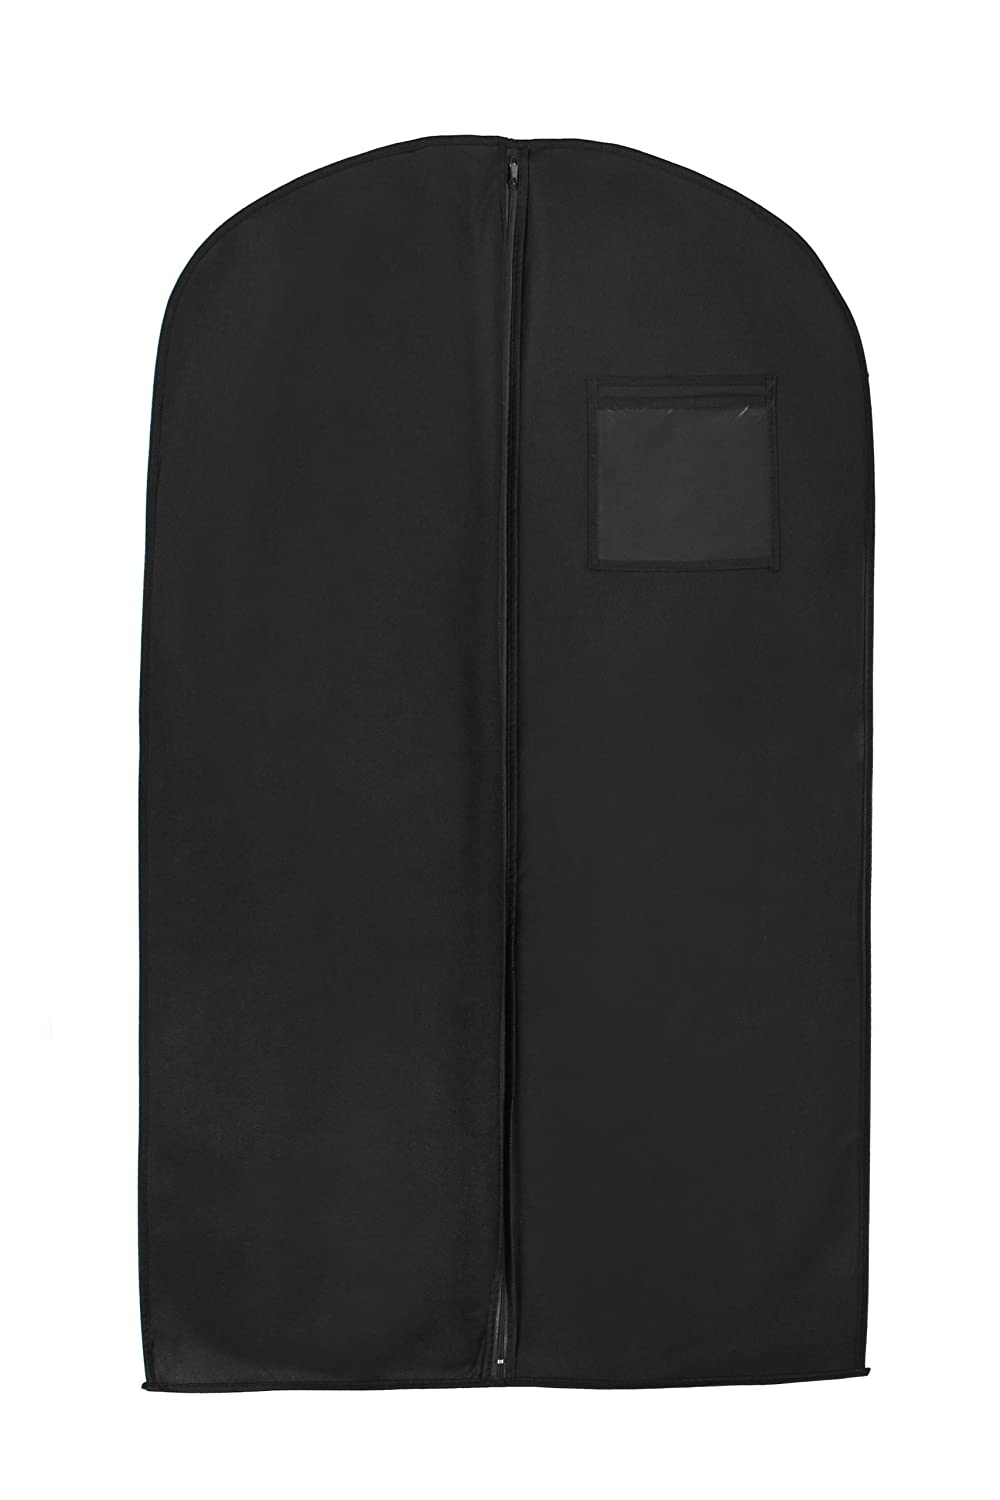 New Breathable 46 Suit/dress Black Garment Bag by BAGS FOR LESSTM Budget Bags Inc